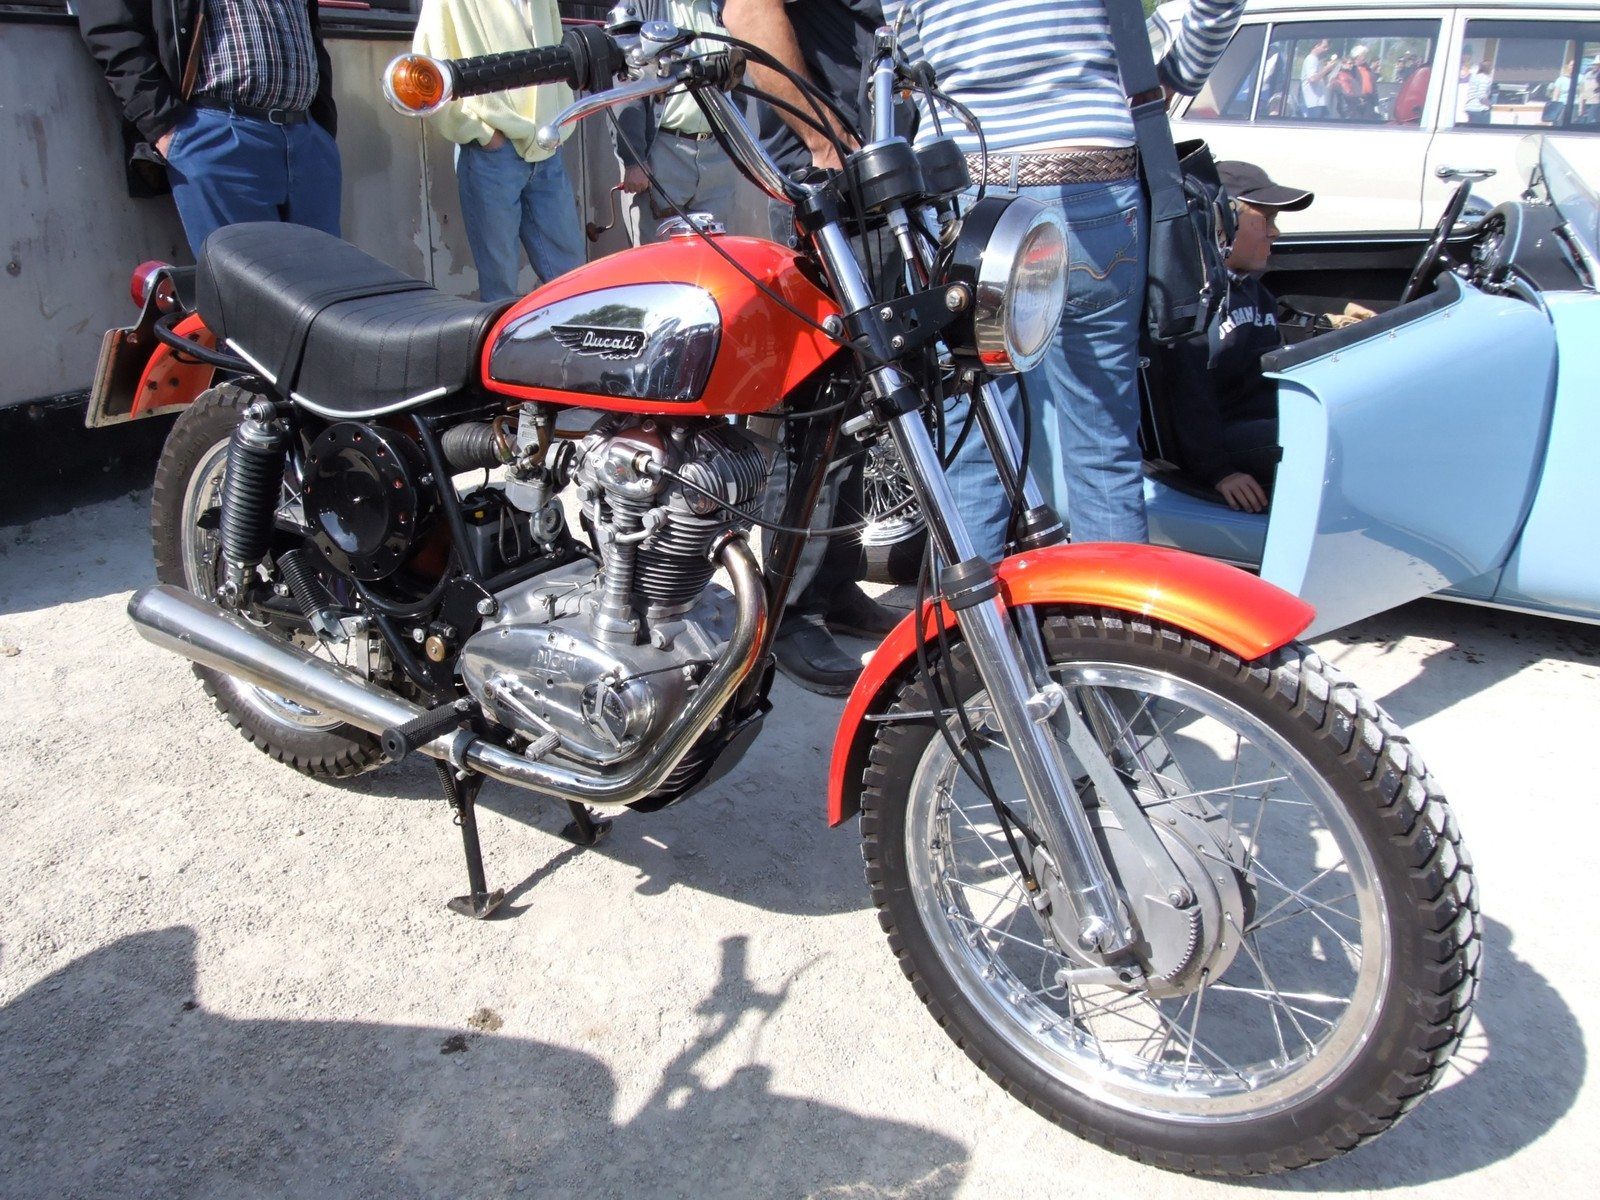 Ducati 450 Mark 3 1971 images #148084